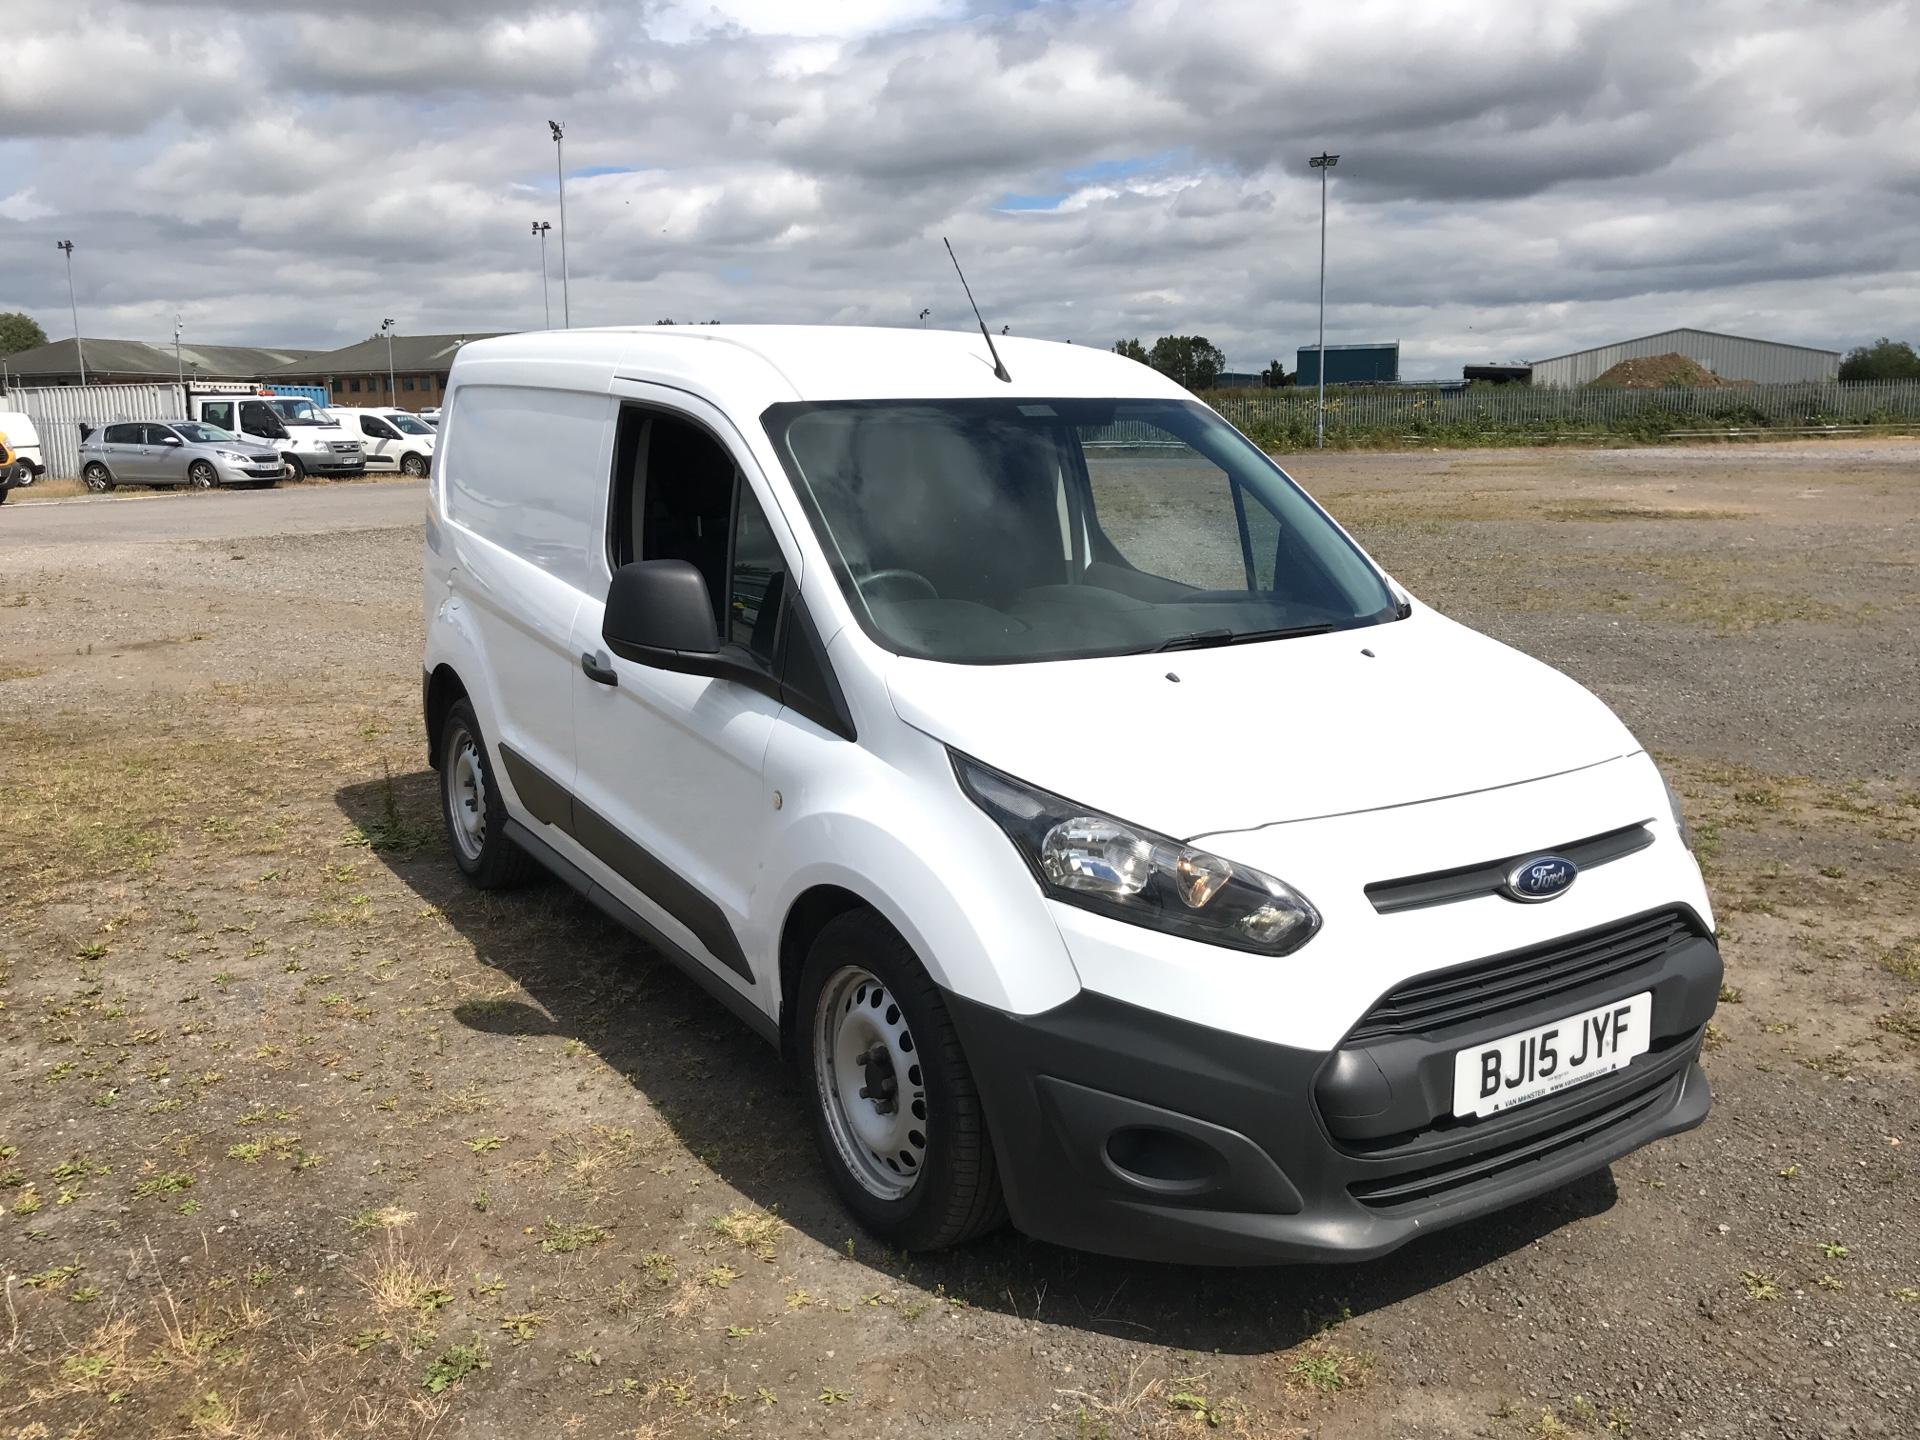 2015 Ford Transit Connect  200 L1 Diesel 1.6 TDCi 75PS Van  EURO 5 *VALUE RANGE VEHICLE CONDITION REFLECTED IN PRICE* (BJ15JYF)